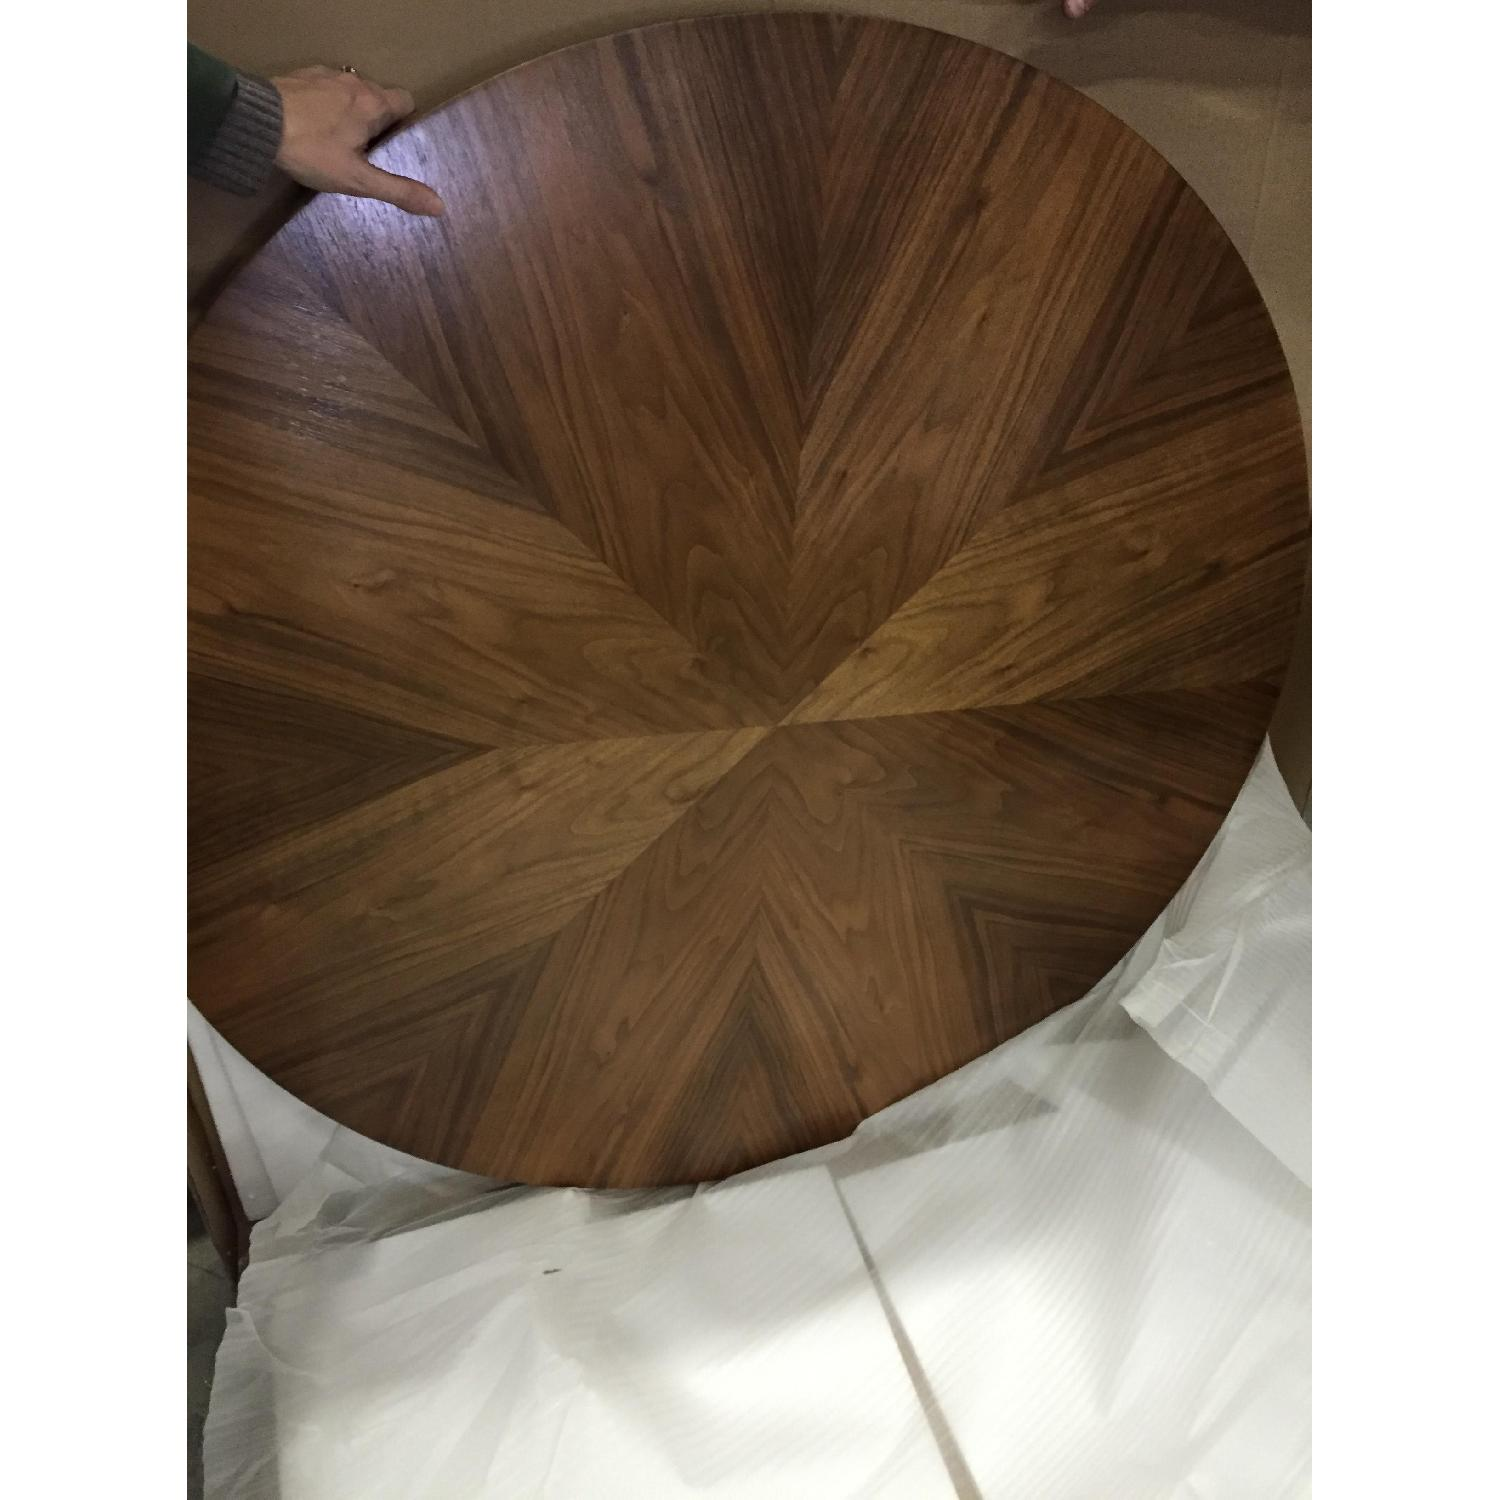 Jonathan Adler Library Table in Nickel w/ Walnut Table Top - image-1